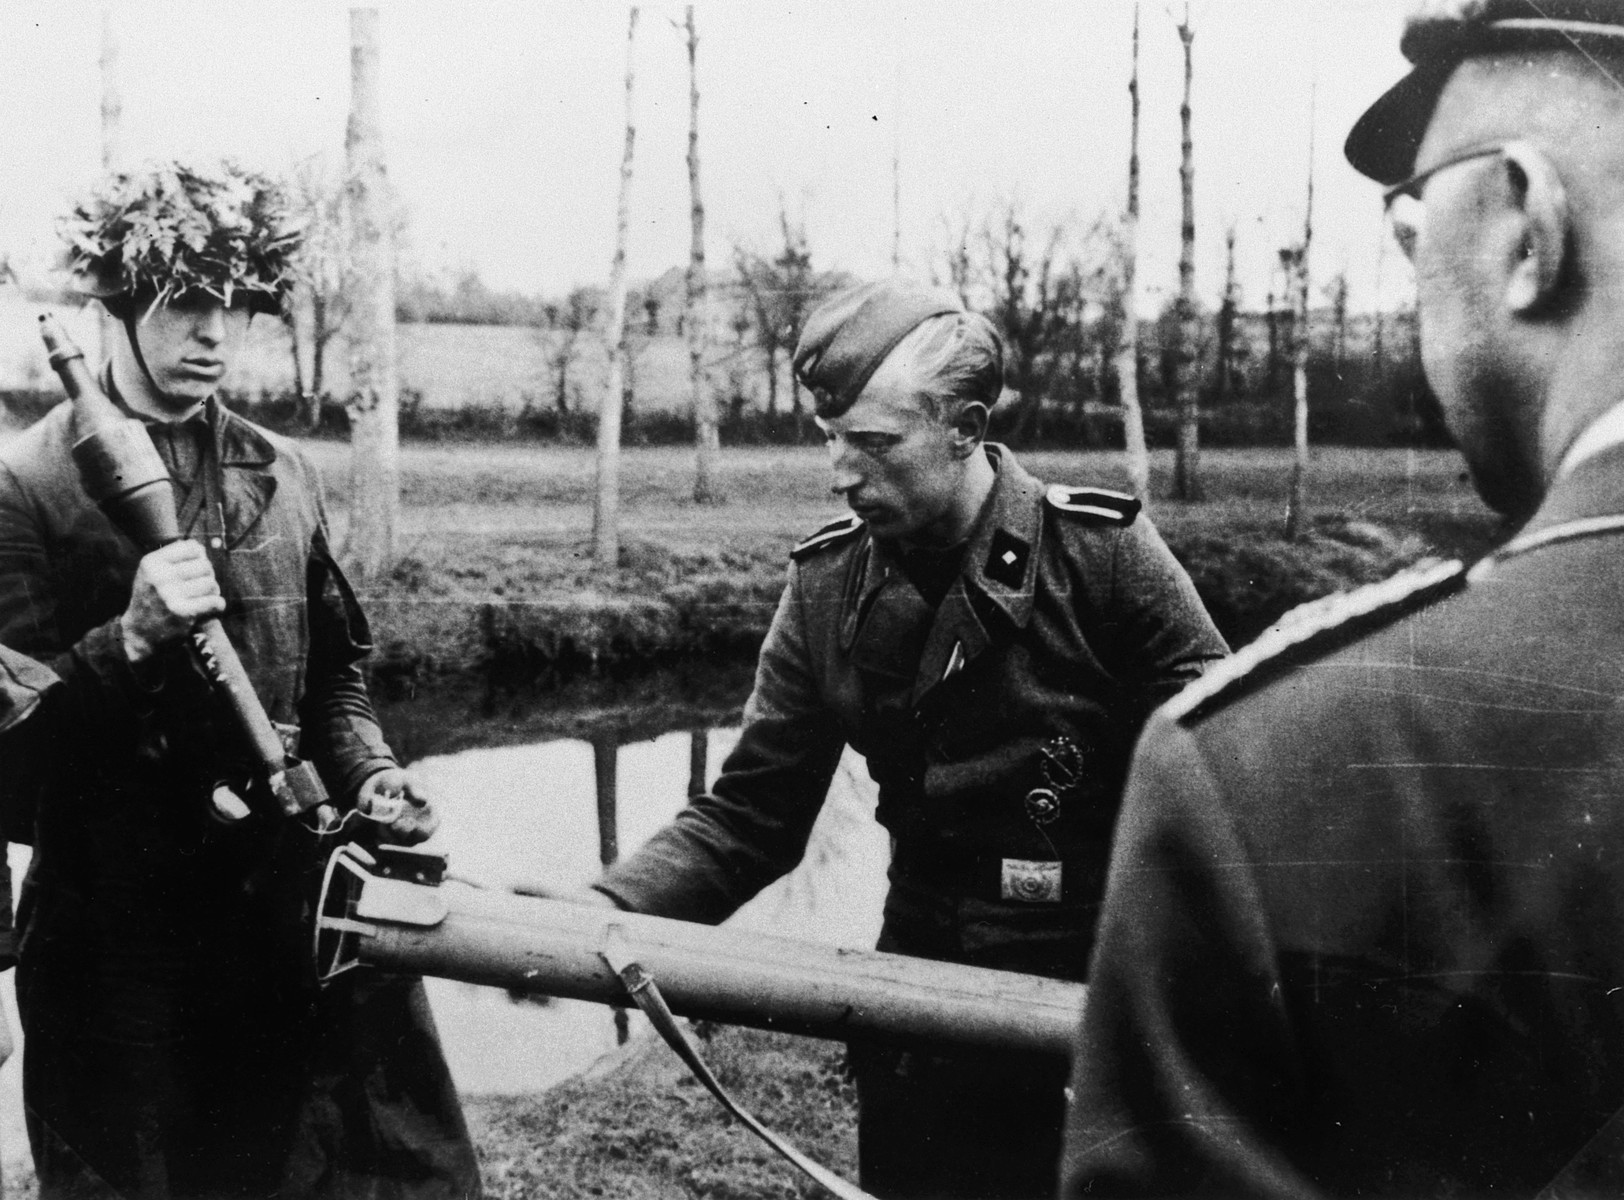 Reichsfuehrer Heinrich Himmler observes two German soldiers, one in a camoulflaged helmut, loading a mortar in an unidentified location.  According to a researcher Himmler is talking with unknown soldiers of Gatz von Berlichingen. The photo was taken in Thouars on April 10, 1944 during the formation of the SS-Division Gatz von Berlichingen.  The researcher received this information from Himmlers adjutant Werner Grothmann who Iidentified this and several other photos from the same time.